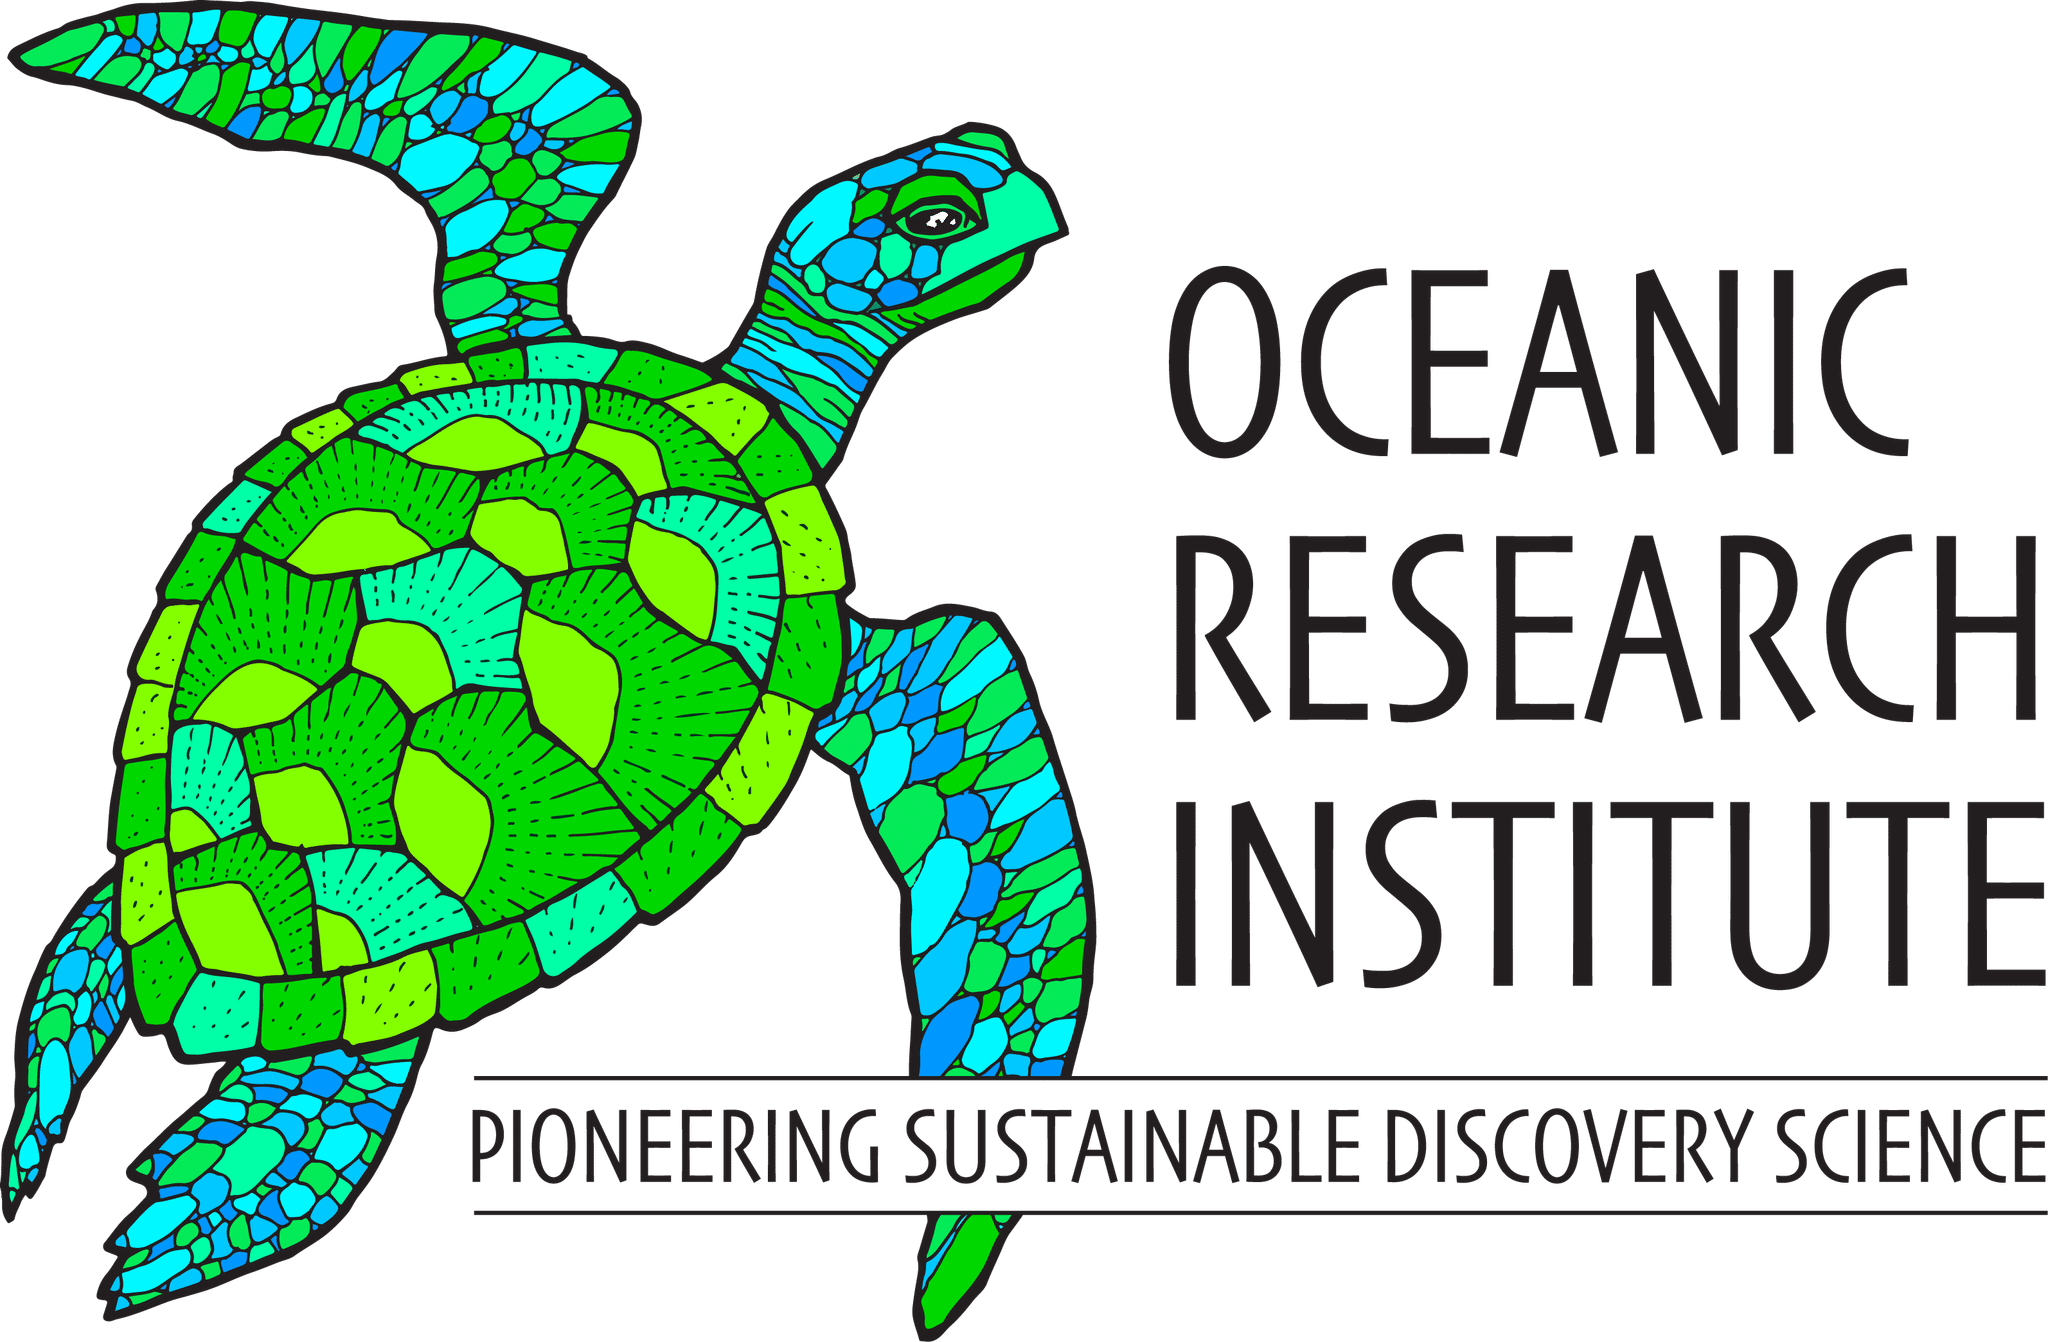 Oceanic Research Institute